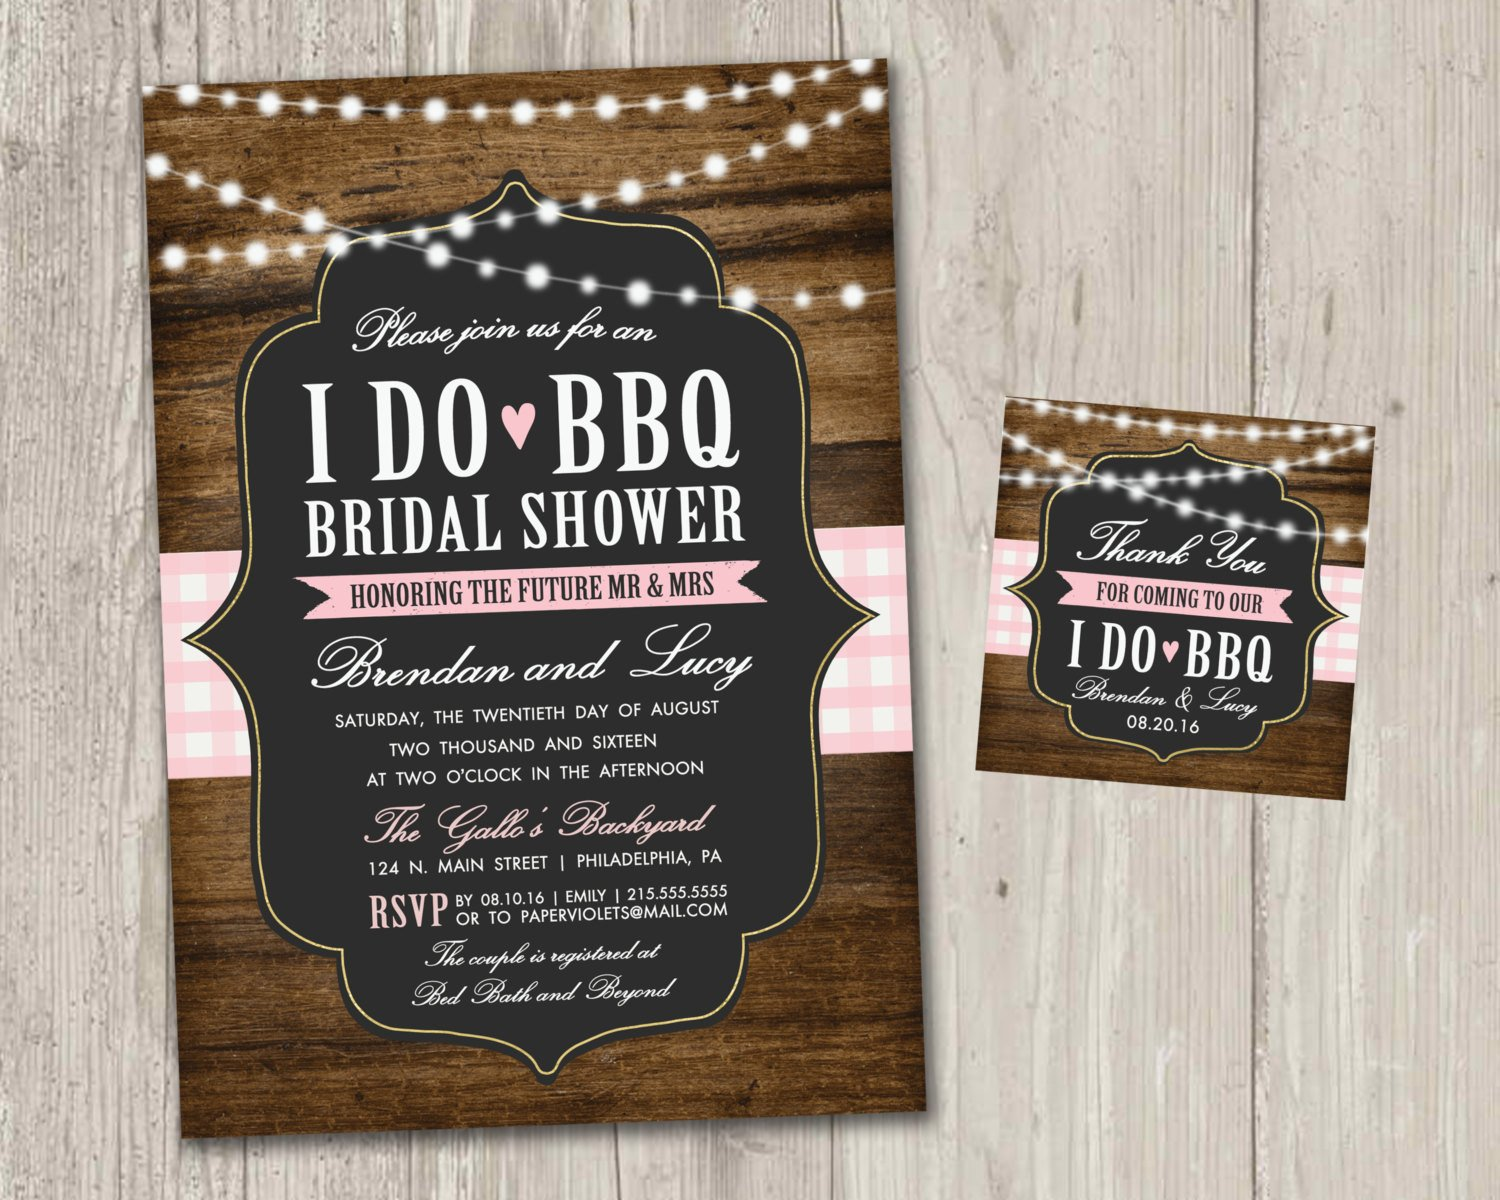 I Do Bbq Invitations I Do Bbq Bridal Shower Invitations Backyard Wedding